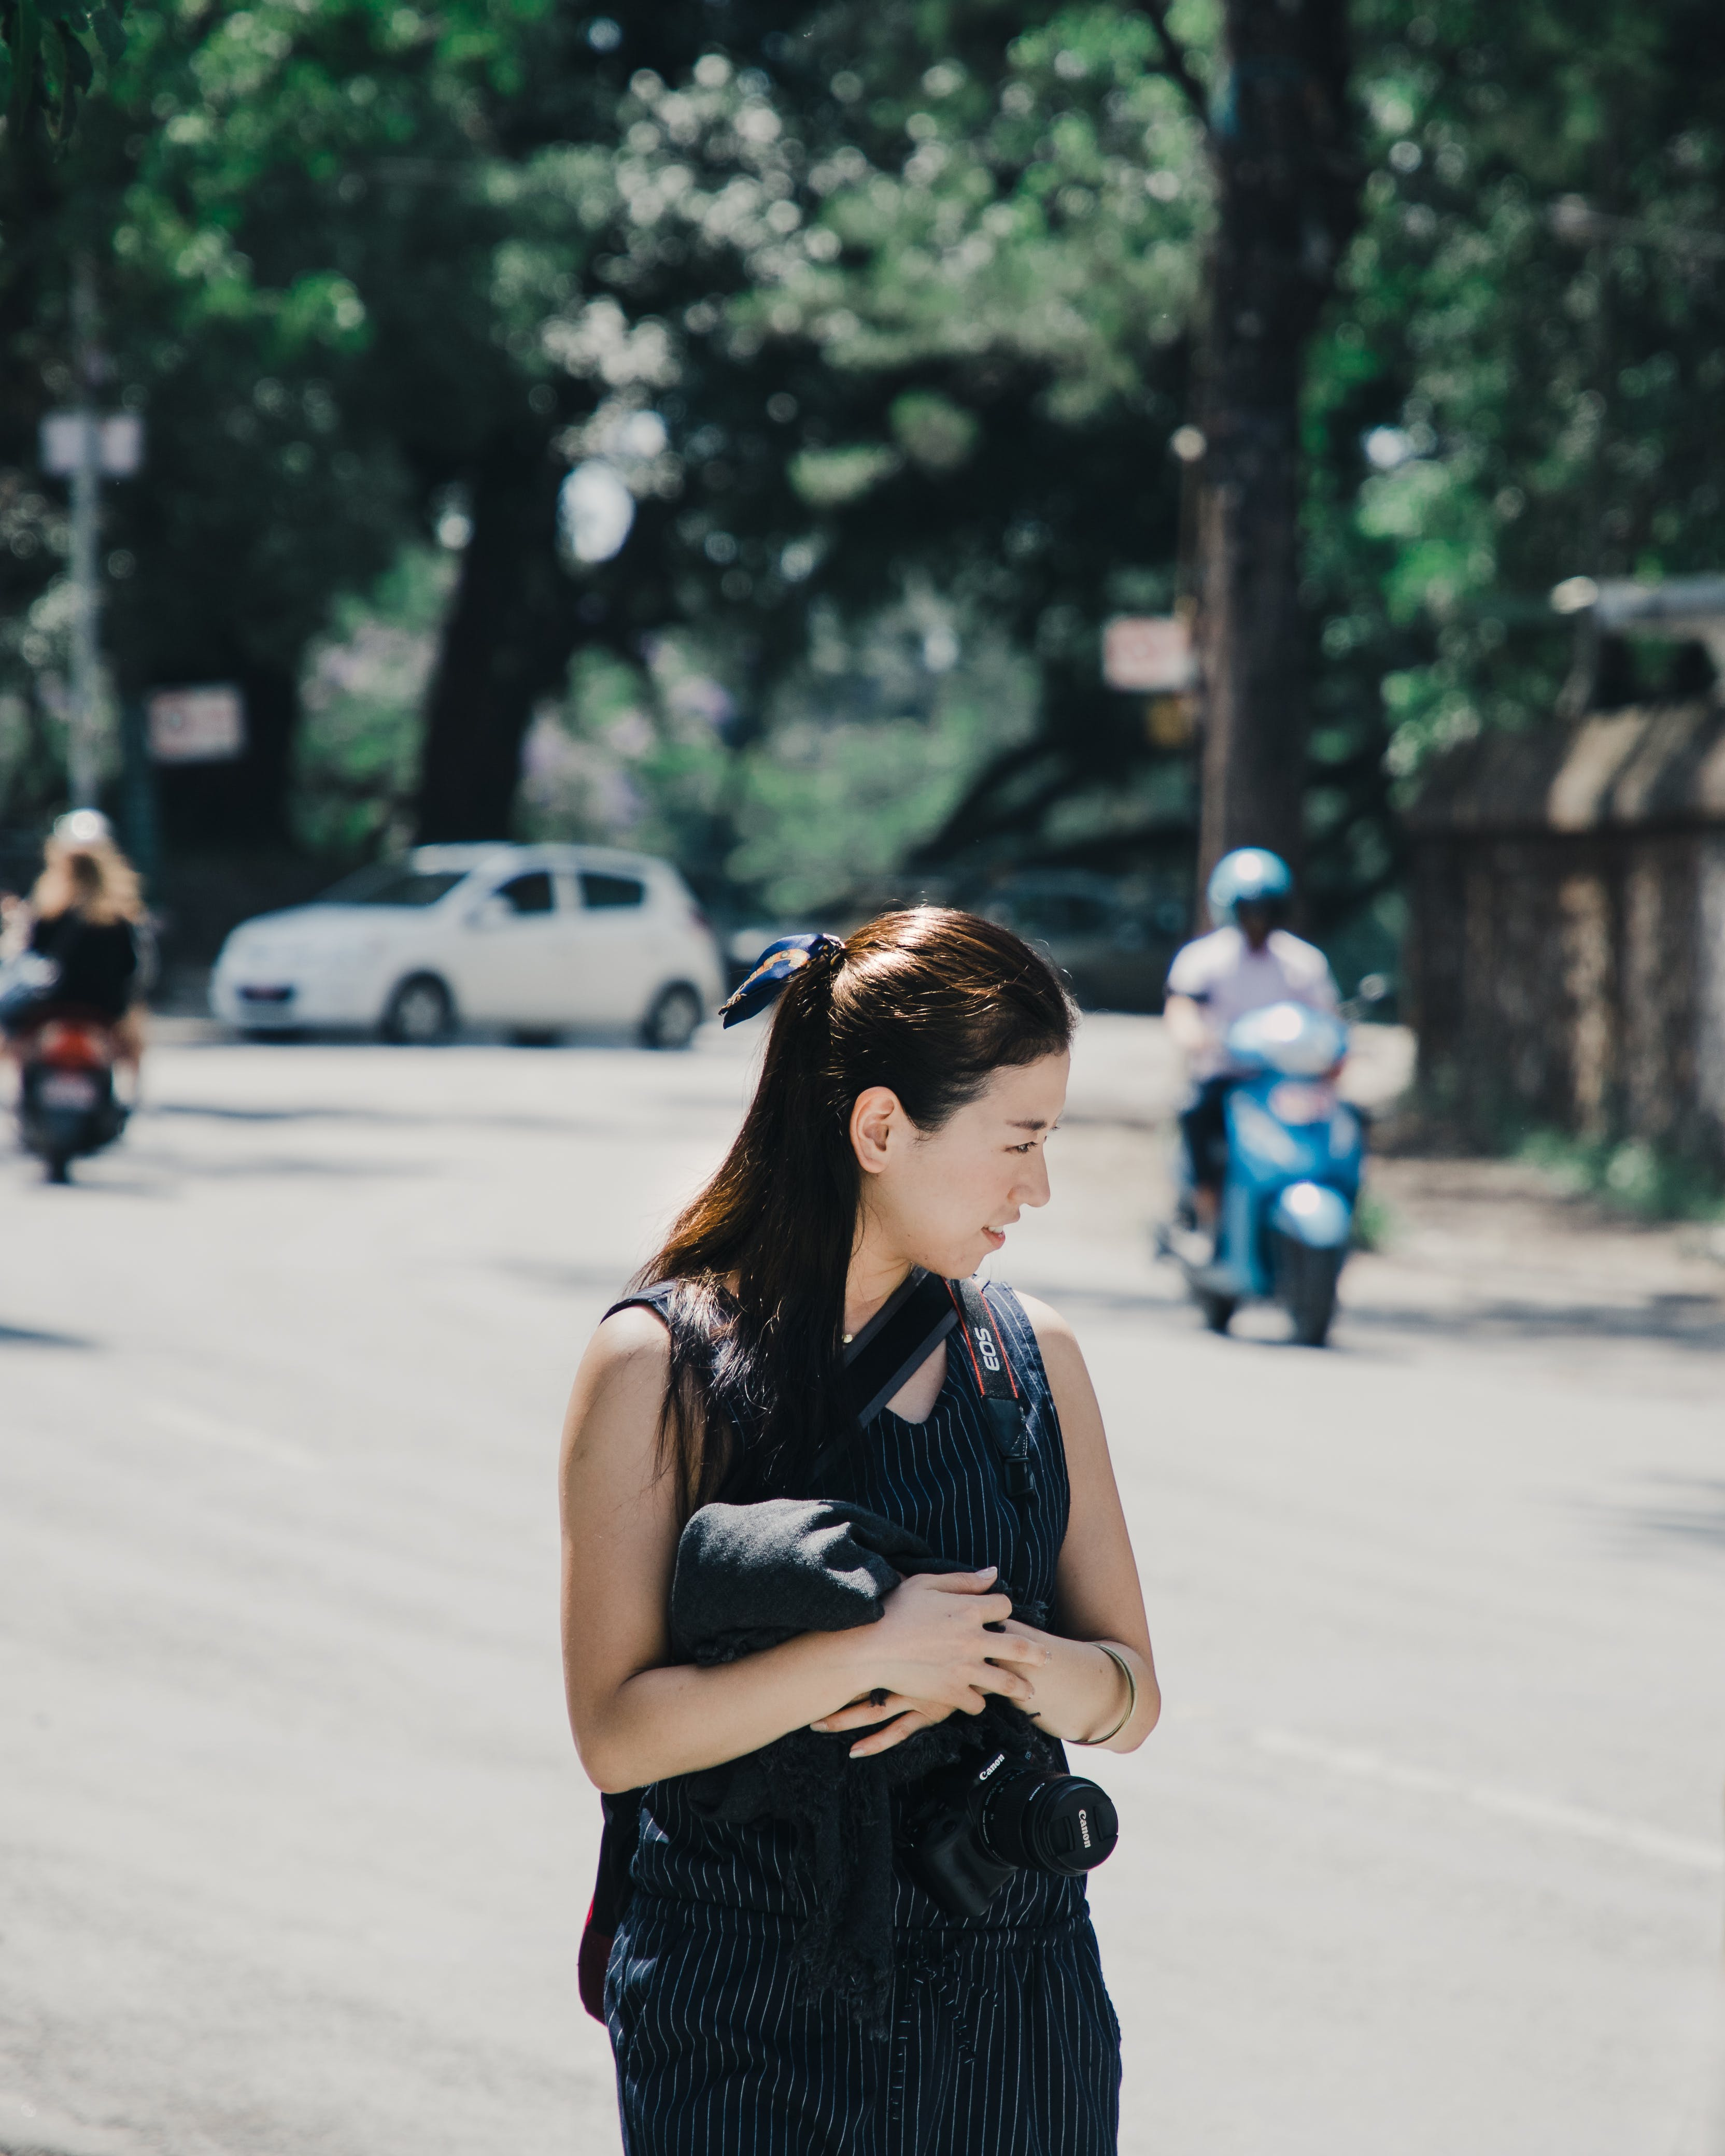 Shallow Focus Photography of Woman in Black Sleeveless Top